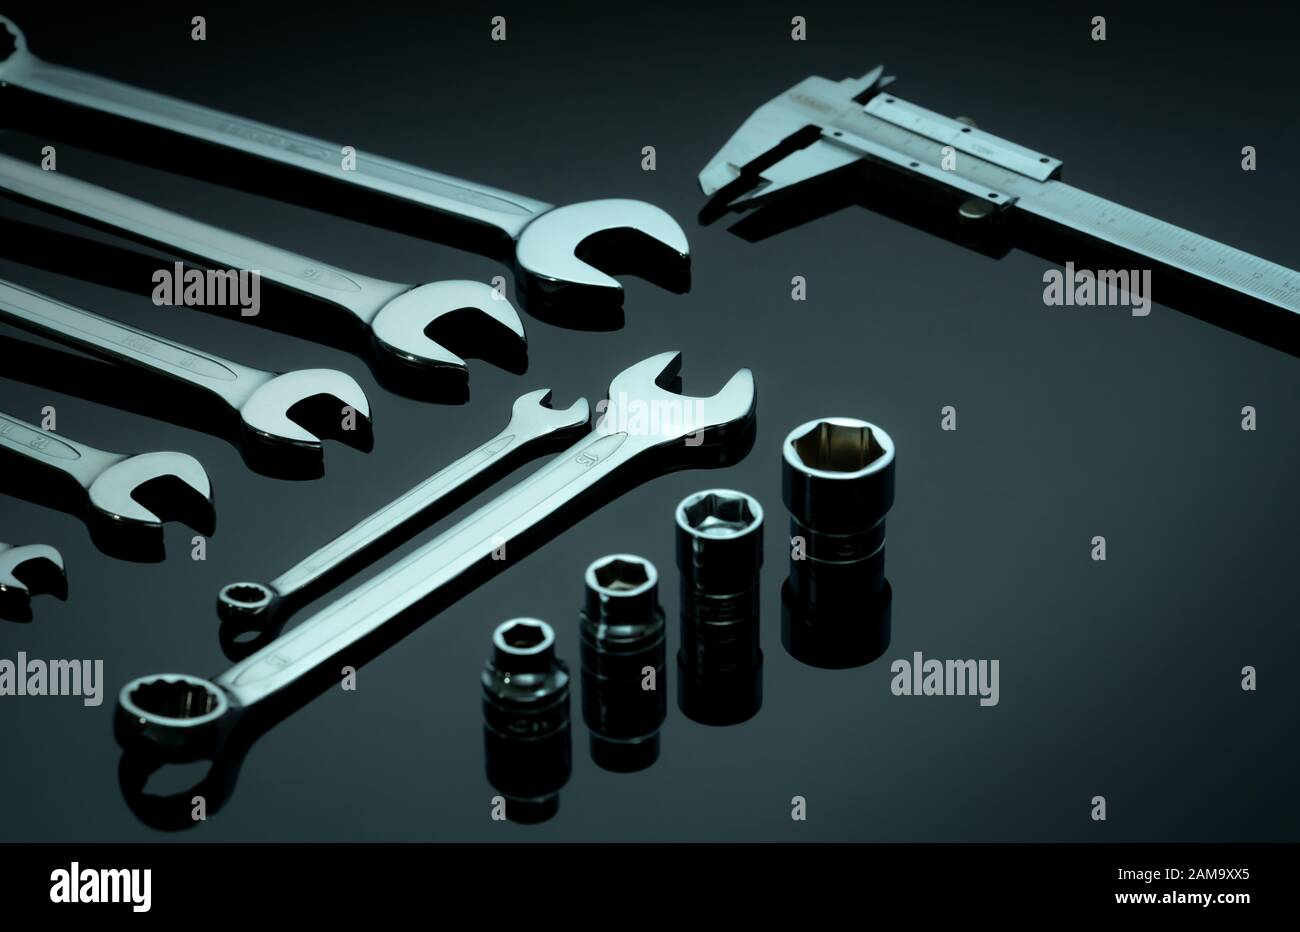 Set of chrome wrenches or spanners, hexagon socket, and vernier caliper on dark table in workshop. Chrome vanadium spanner wrench. Silver wrenches. Stock Photo